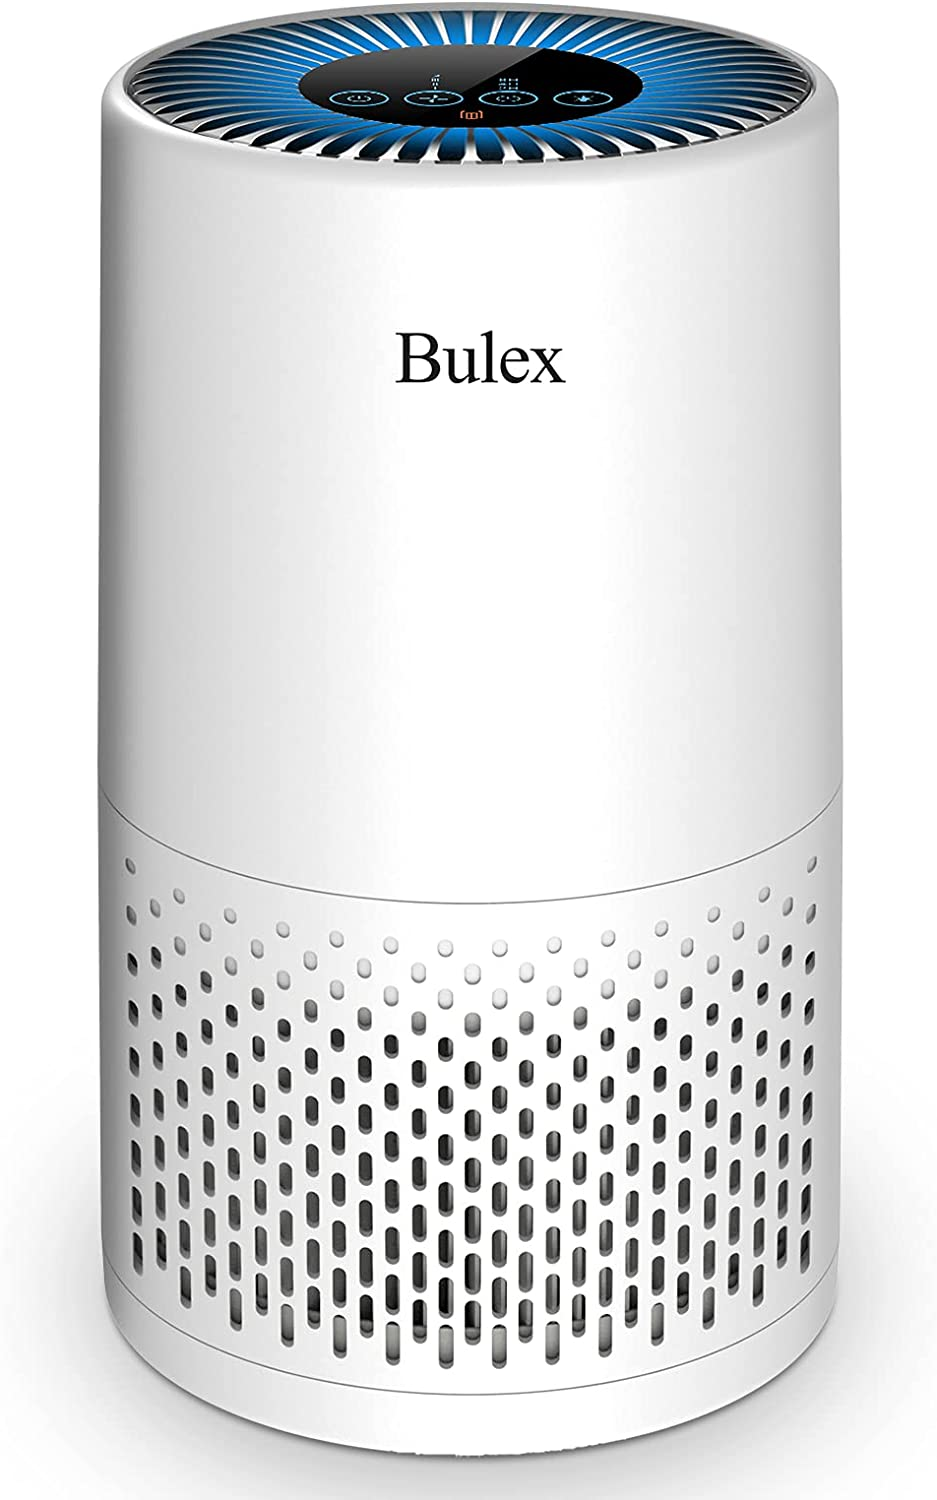 Bulex Air Purifier with H13 True HEPA Filter, HEPA Air Purifier Up to 404 ft², 4-Stage Filtration and Purification for Bedroom Home Office, Nightlight Sleep Mode, White (Available for California)